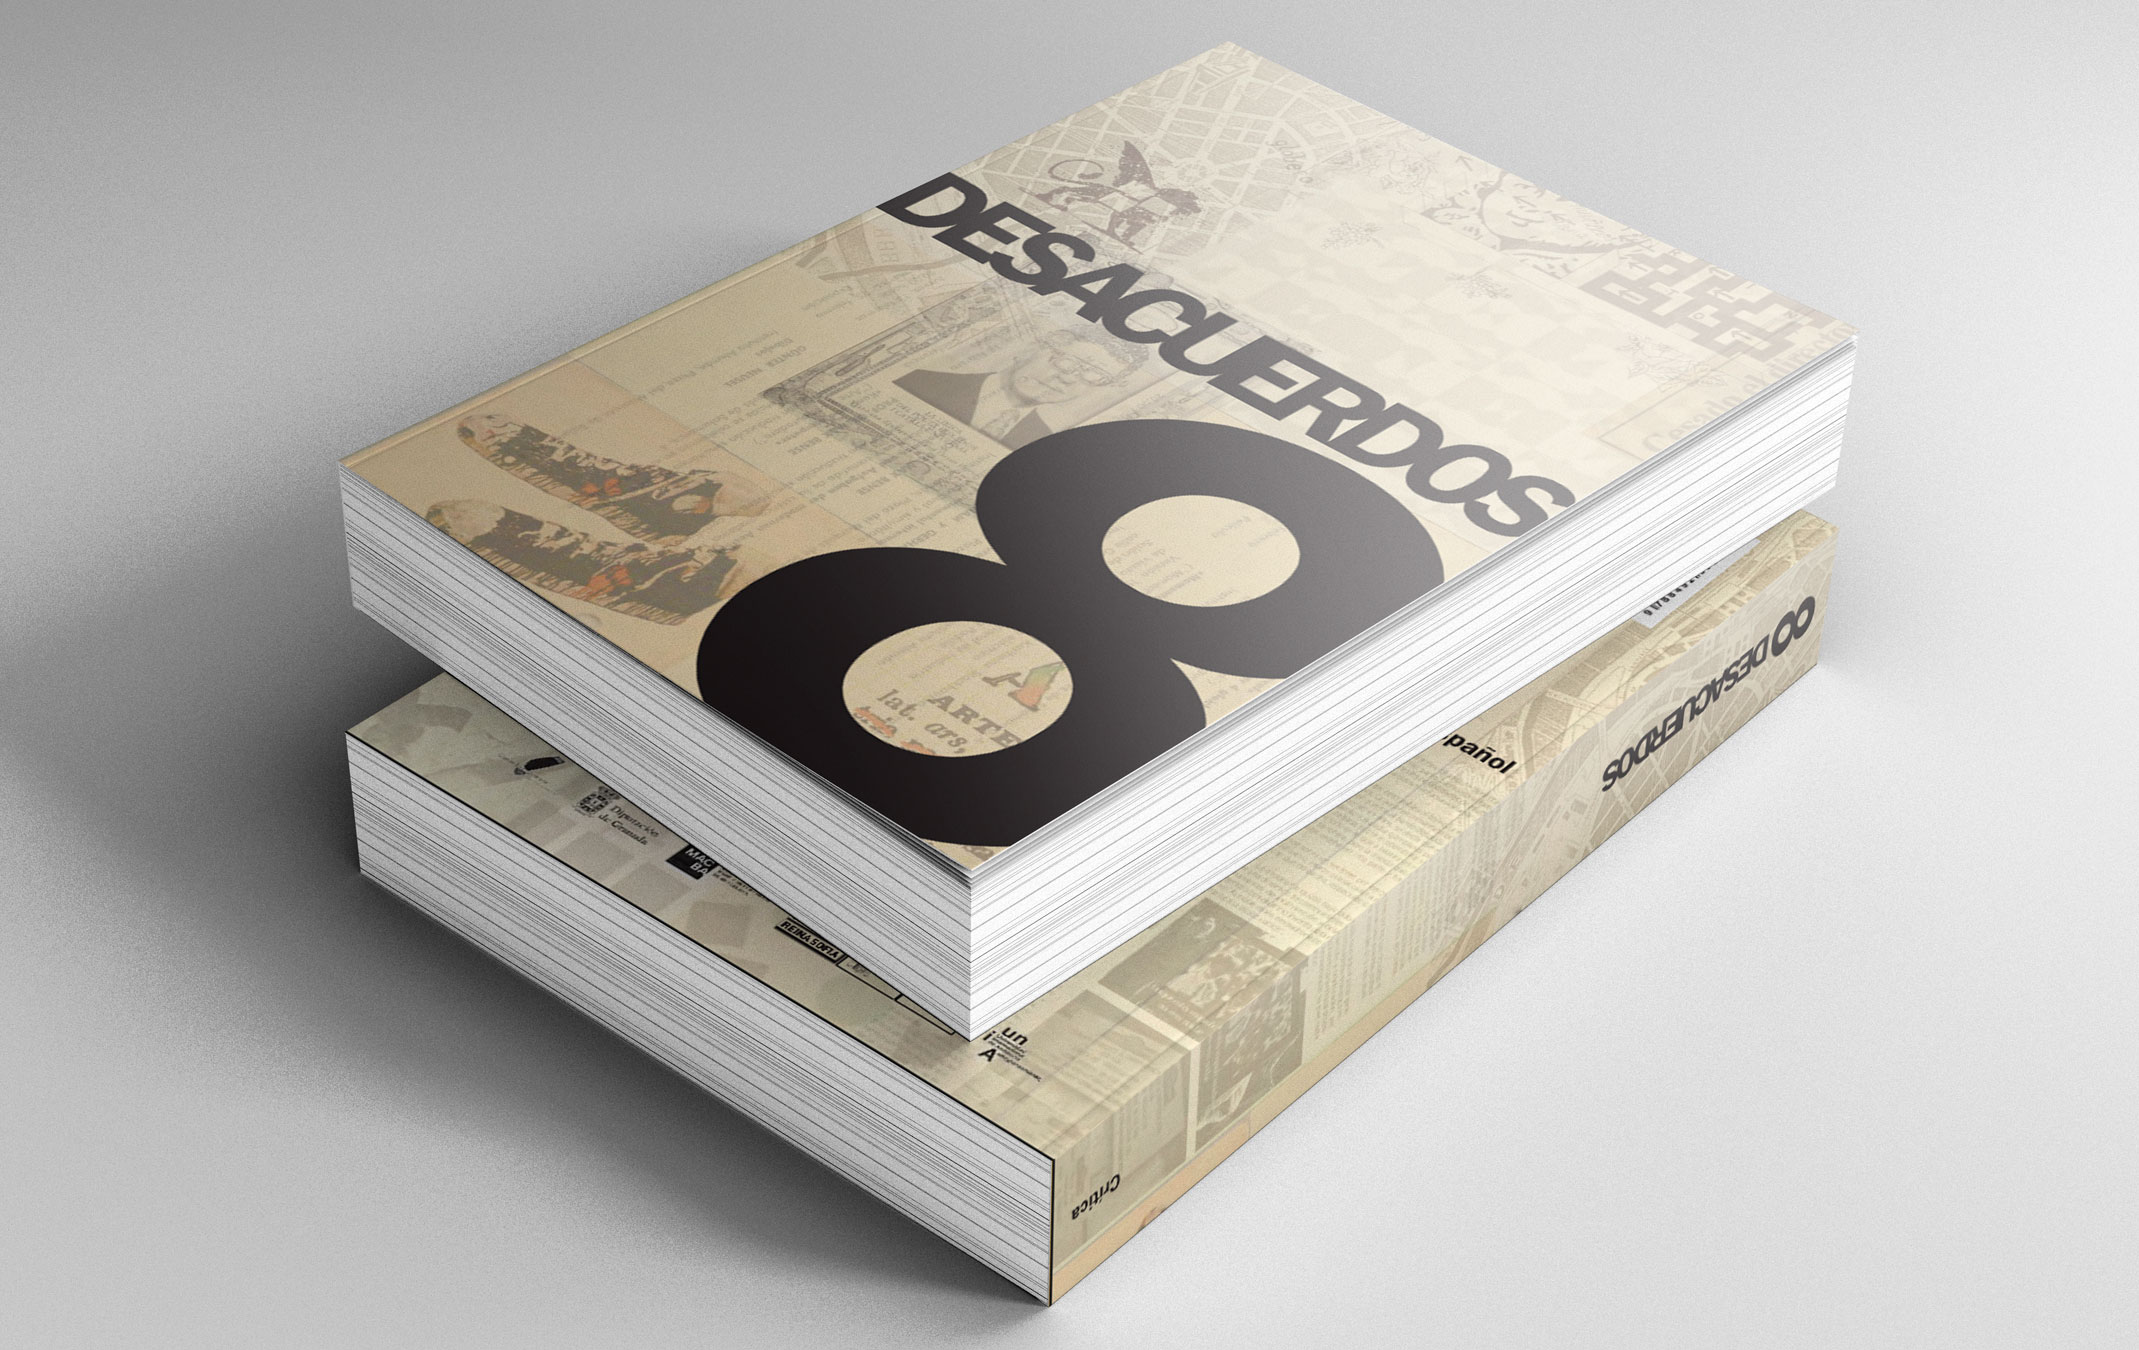 Desacuerdos. Publications